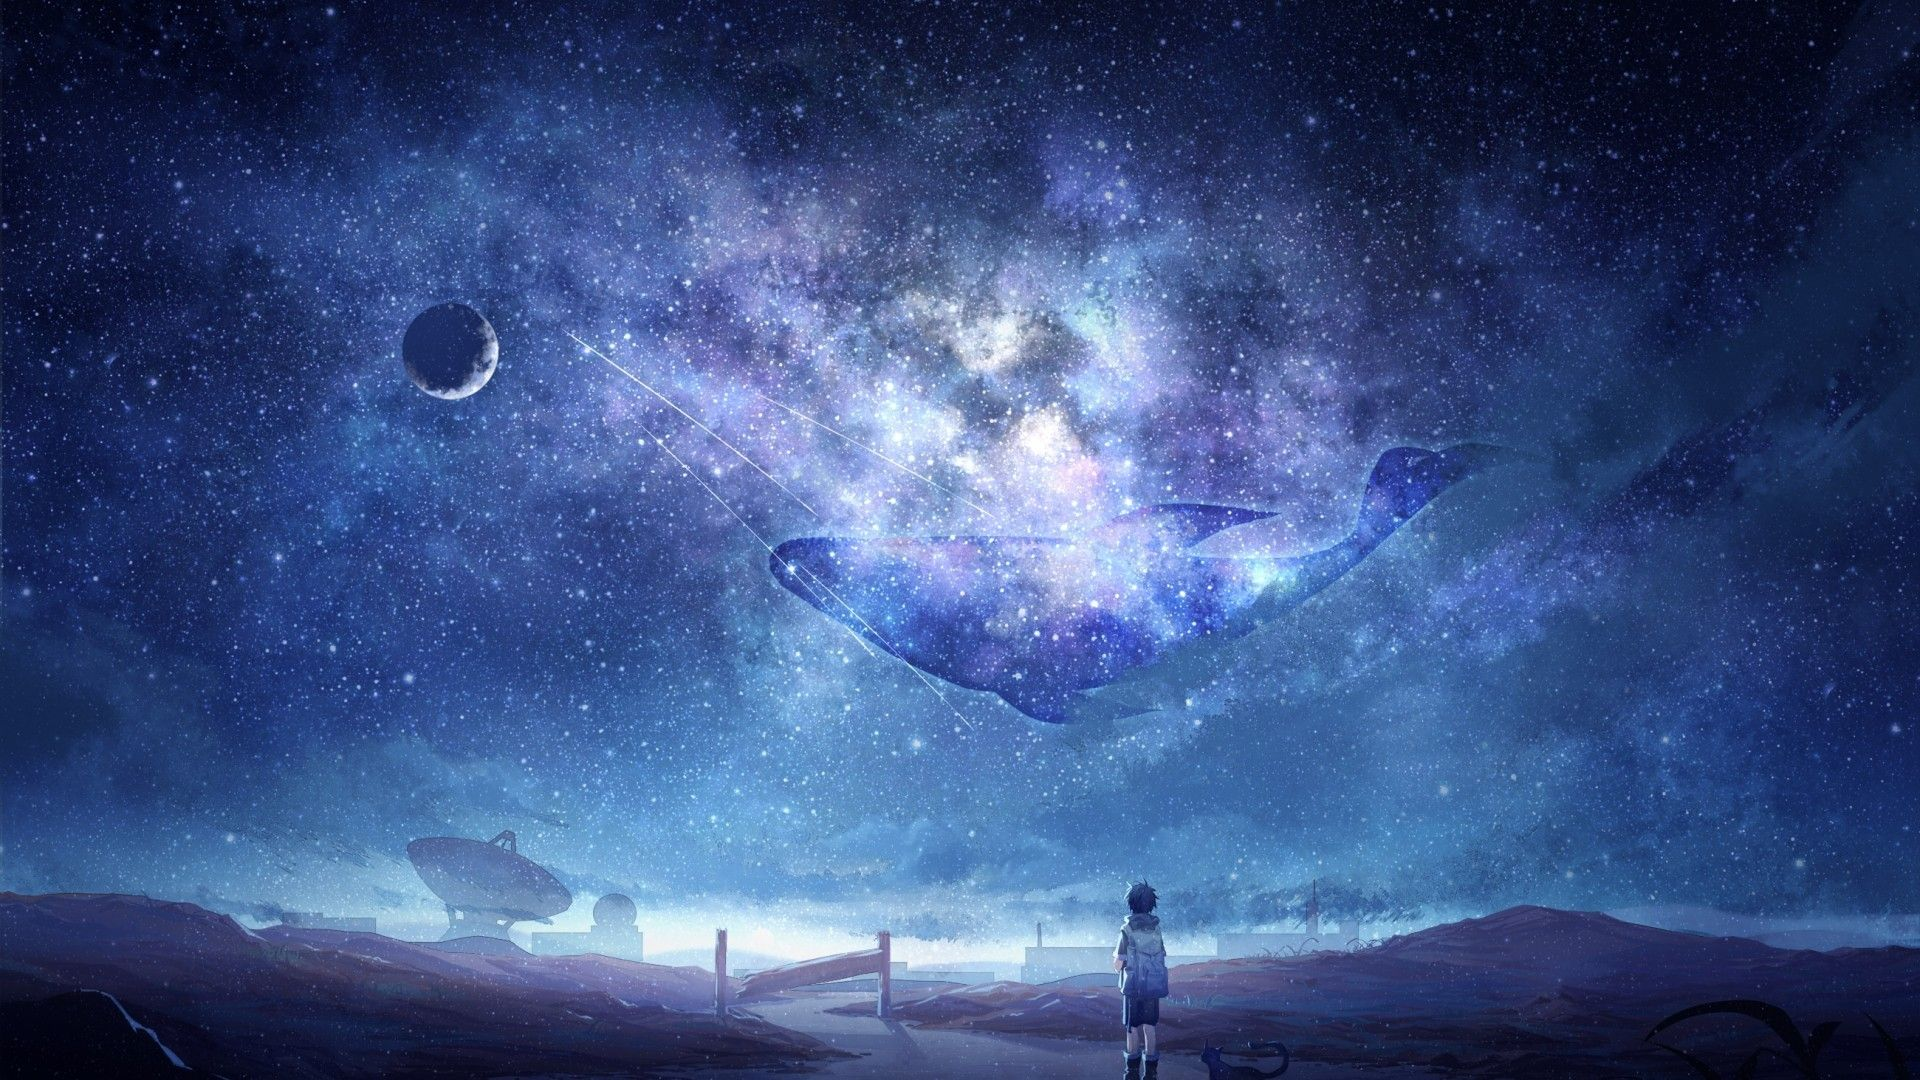 High Hd Anime Sky Wallpapers Wallpaper Cave